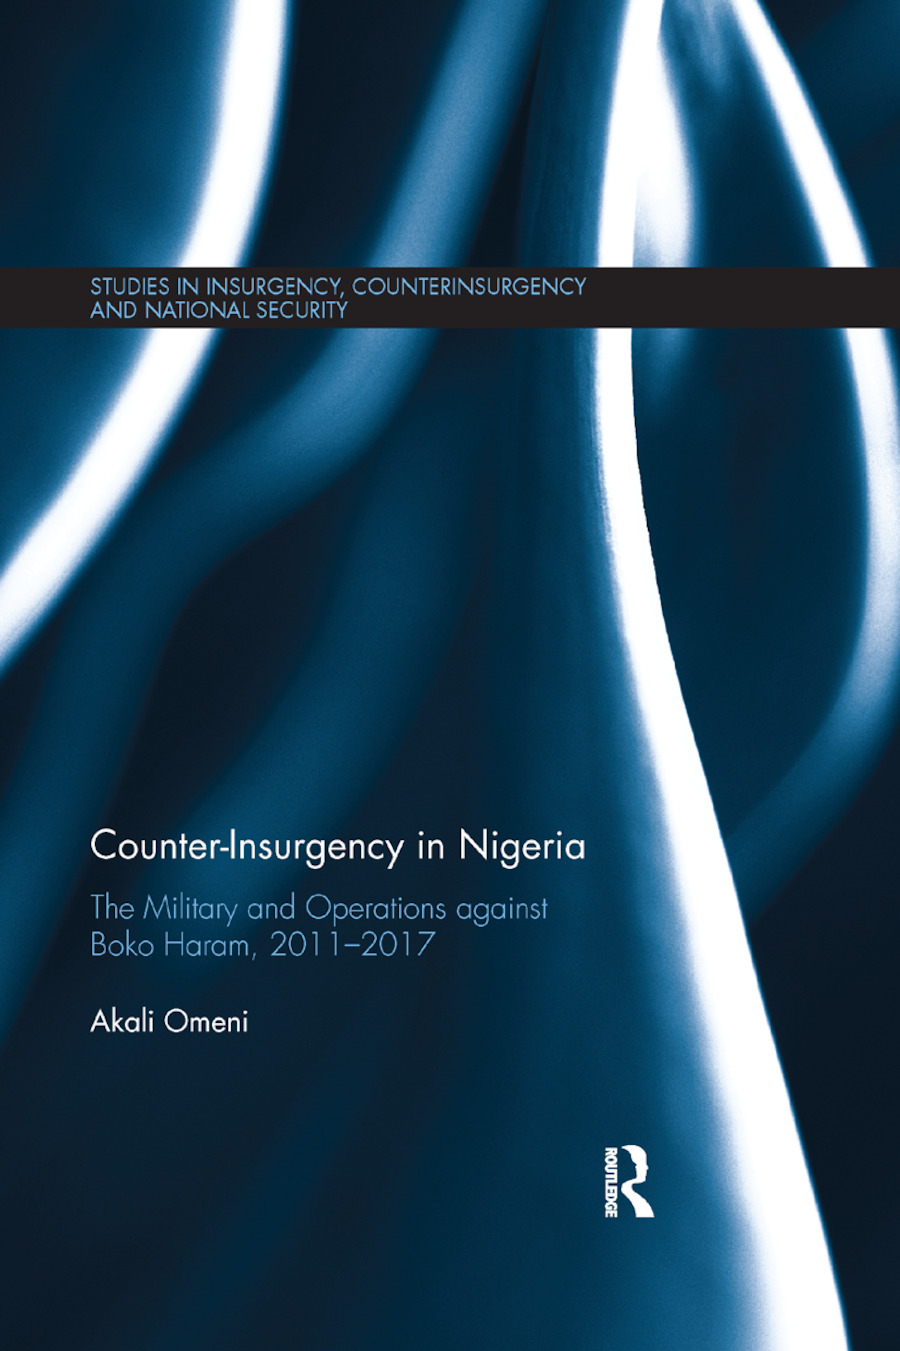 Counter-Insurgency in Nigeria: The Military and Operations against Boko Haram, 2011-2017 book cover